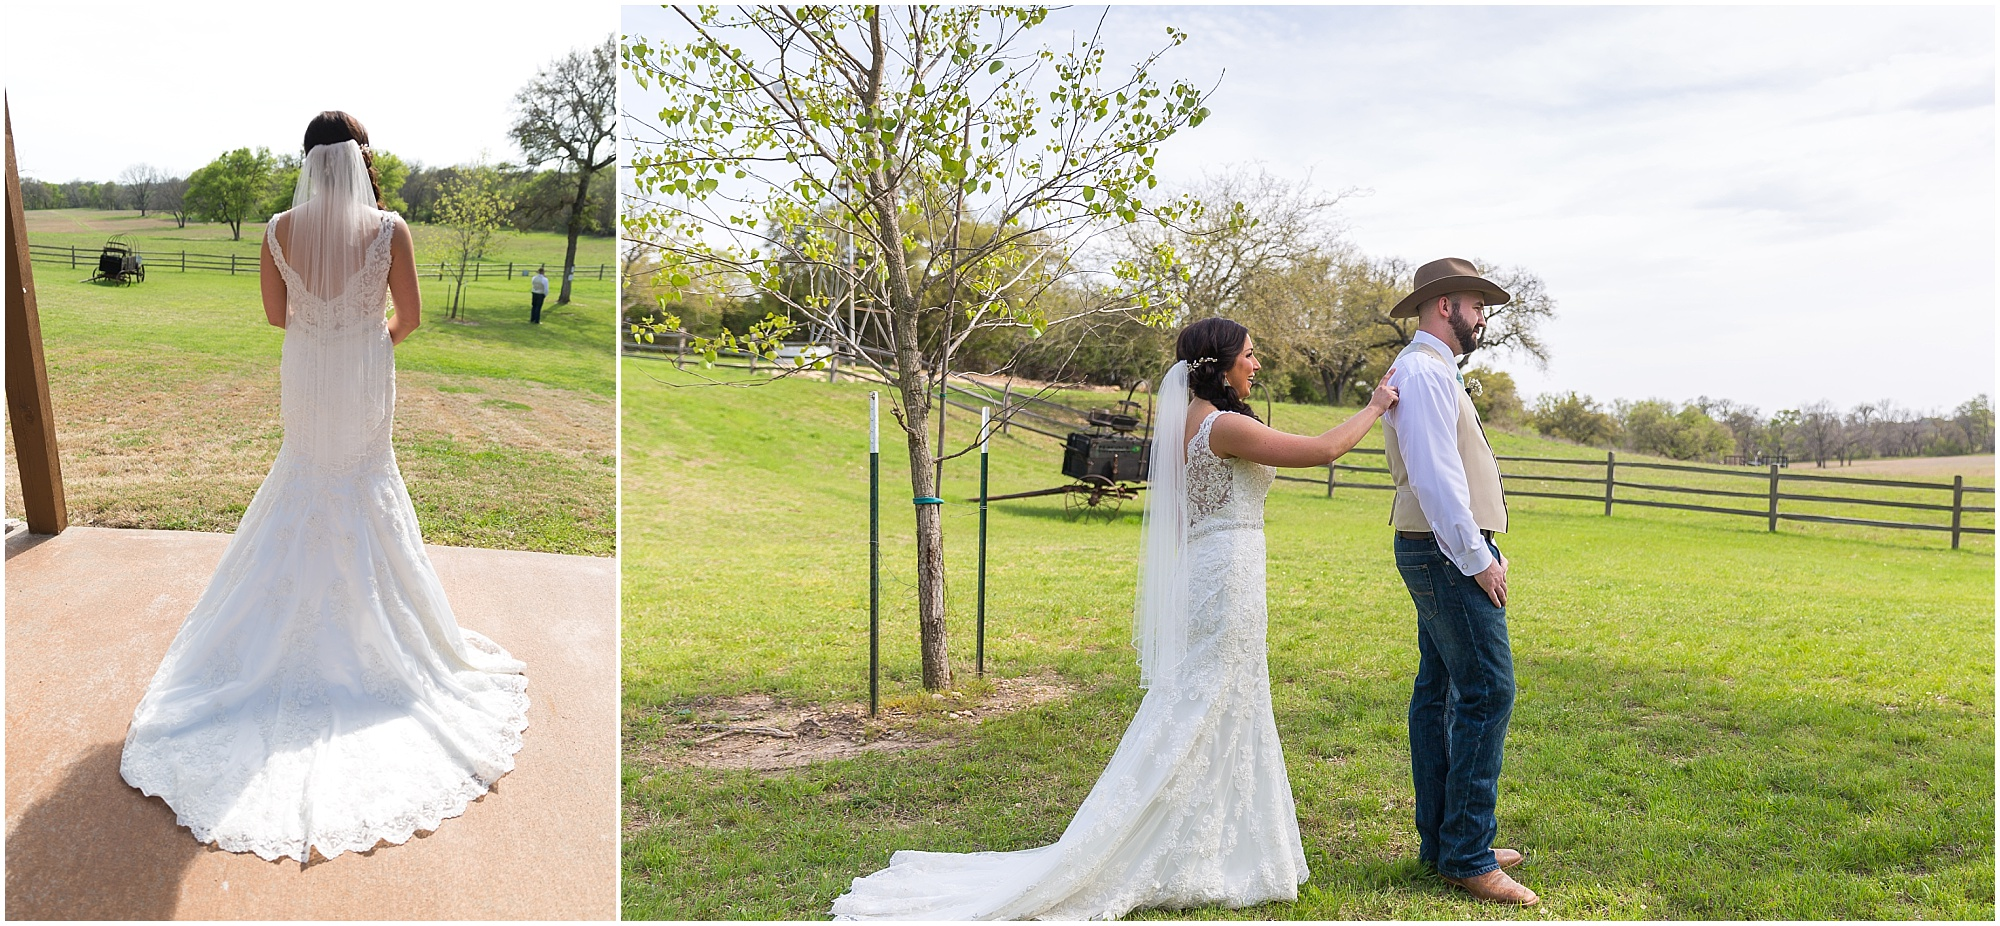 Bride walks up to groom during their first look